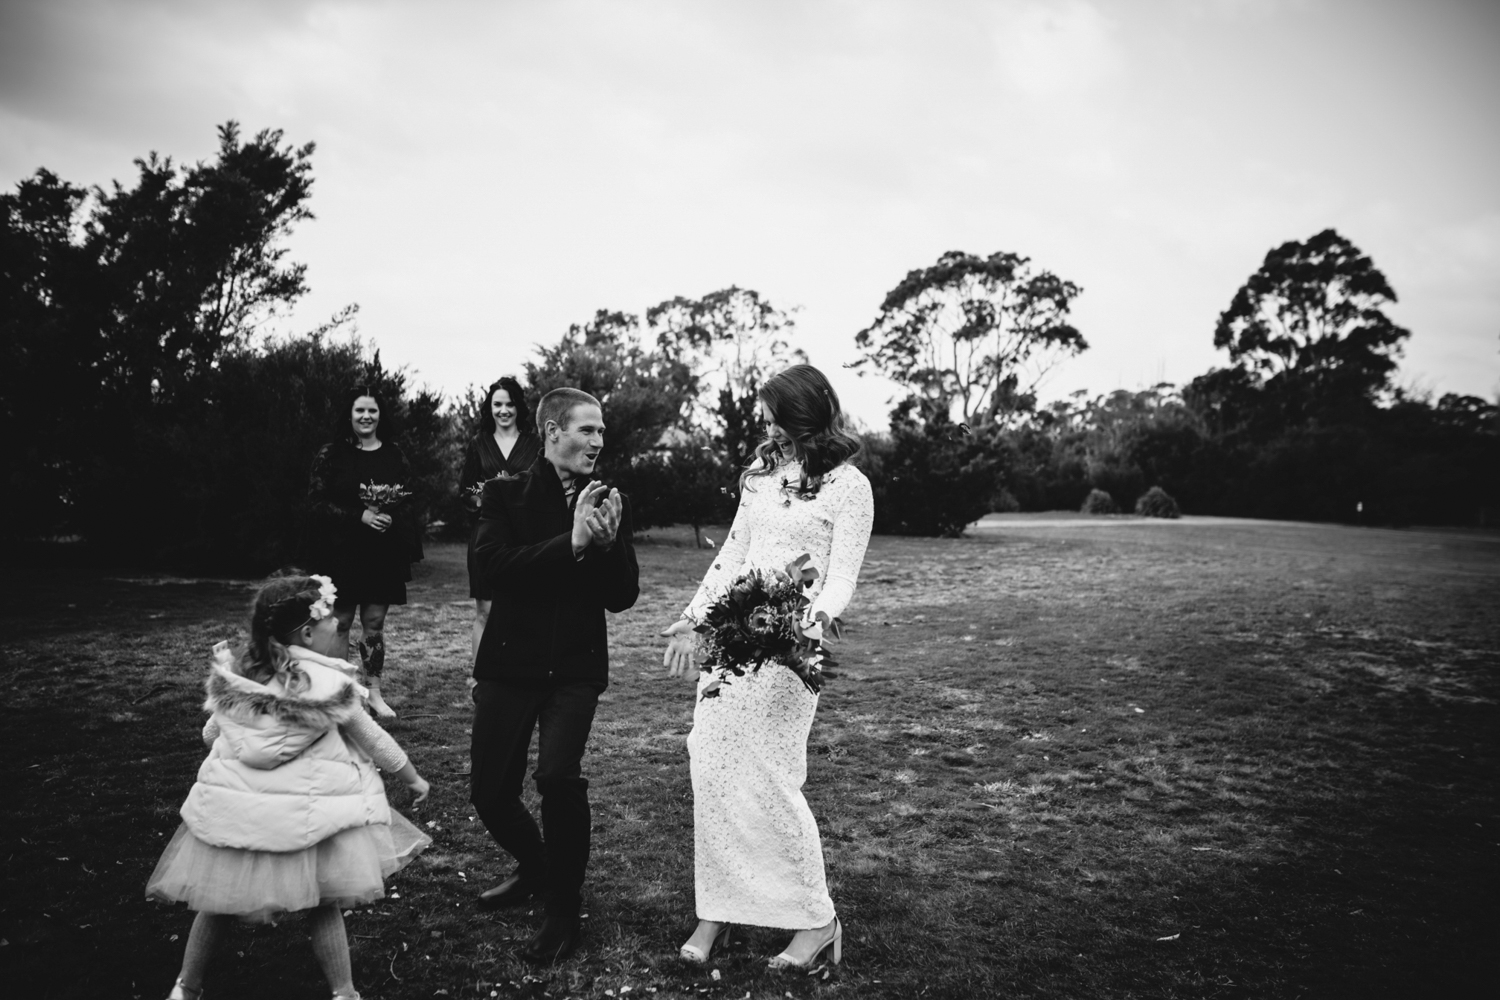 bride squeals after confetti thrown at her by young girl after wedding ceremony in tasmania.